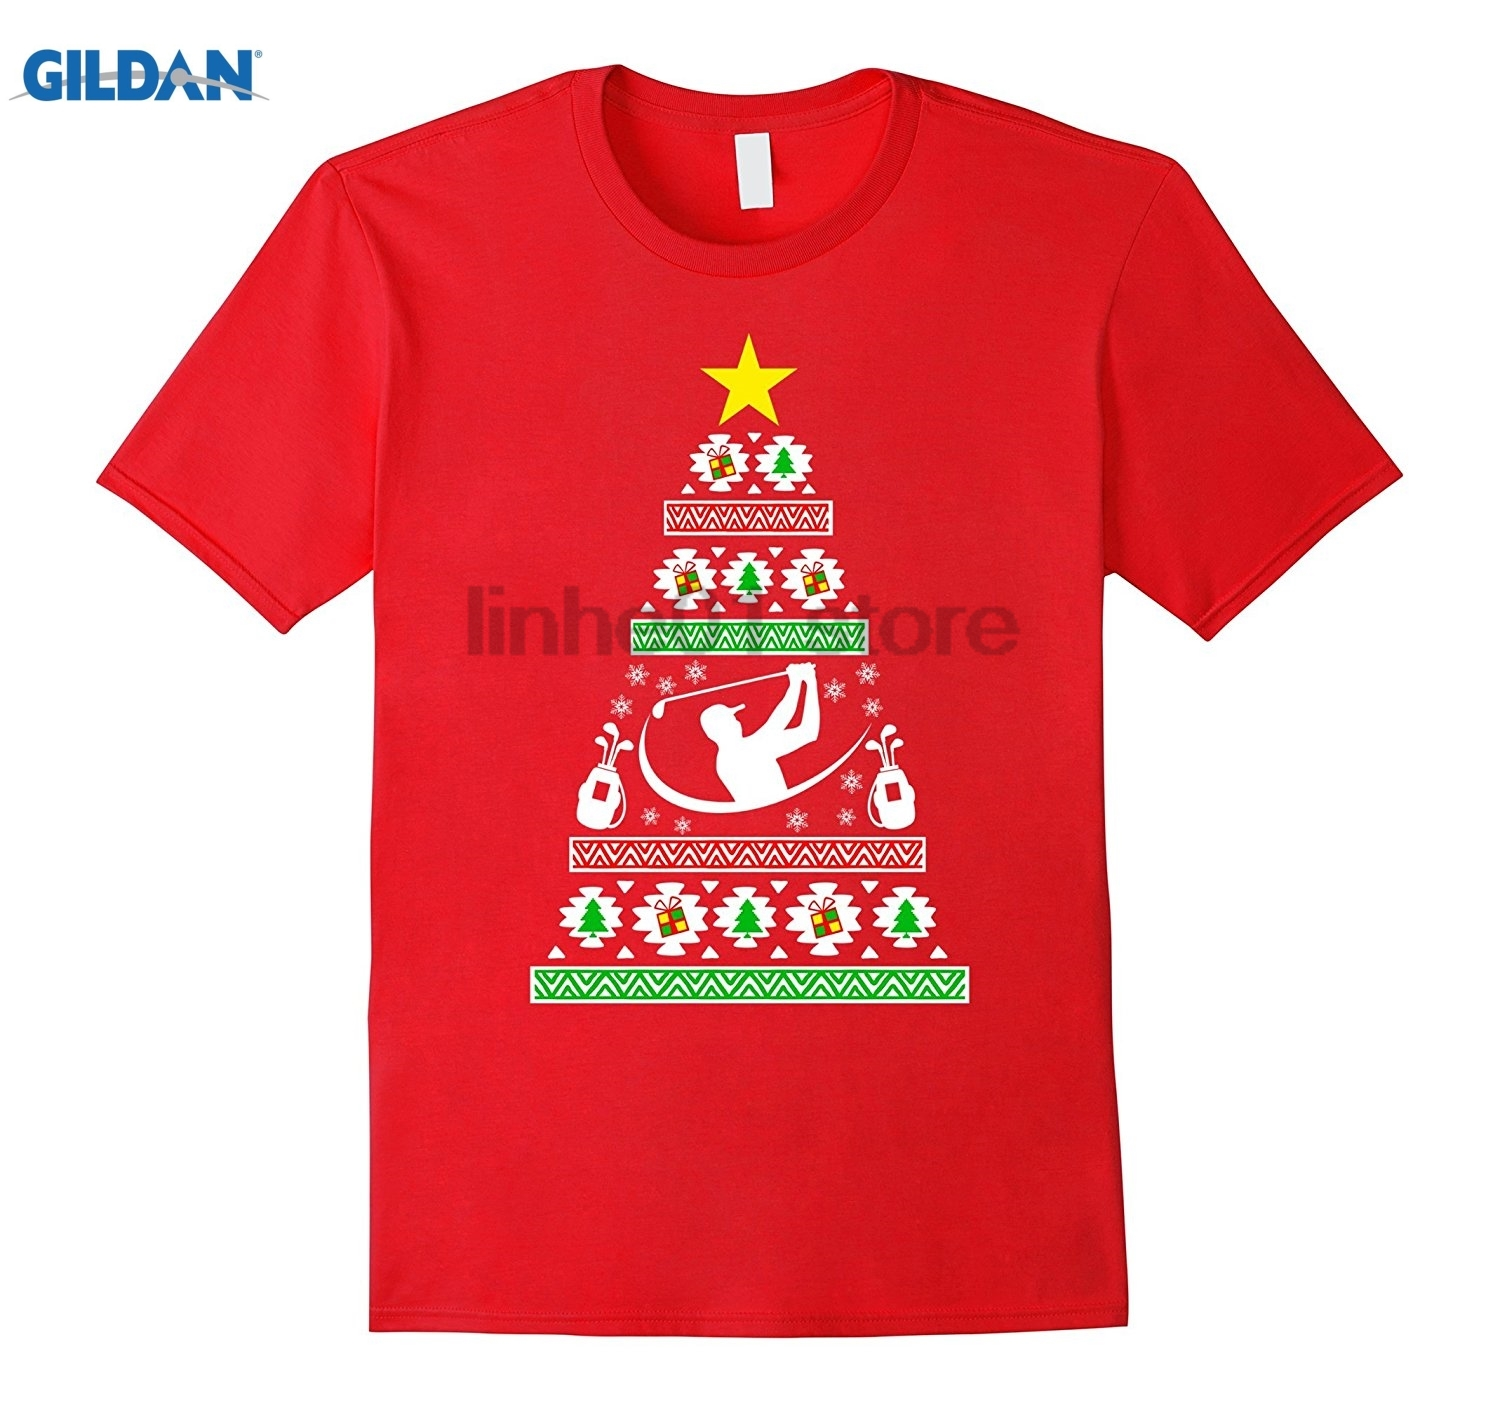 GILDAN accessories gifts idea ugly christmas sweater look glasses Womens T-shirt Mothers Day Ms. T-shirt